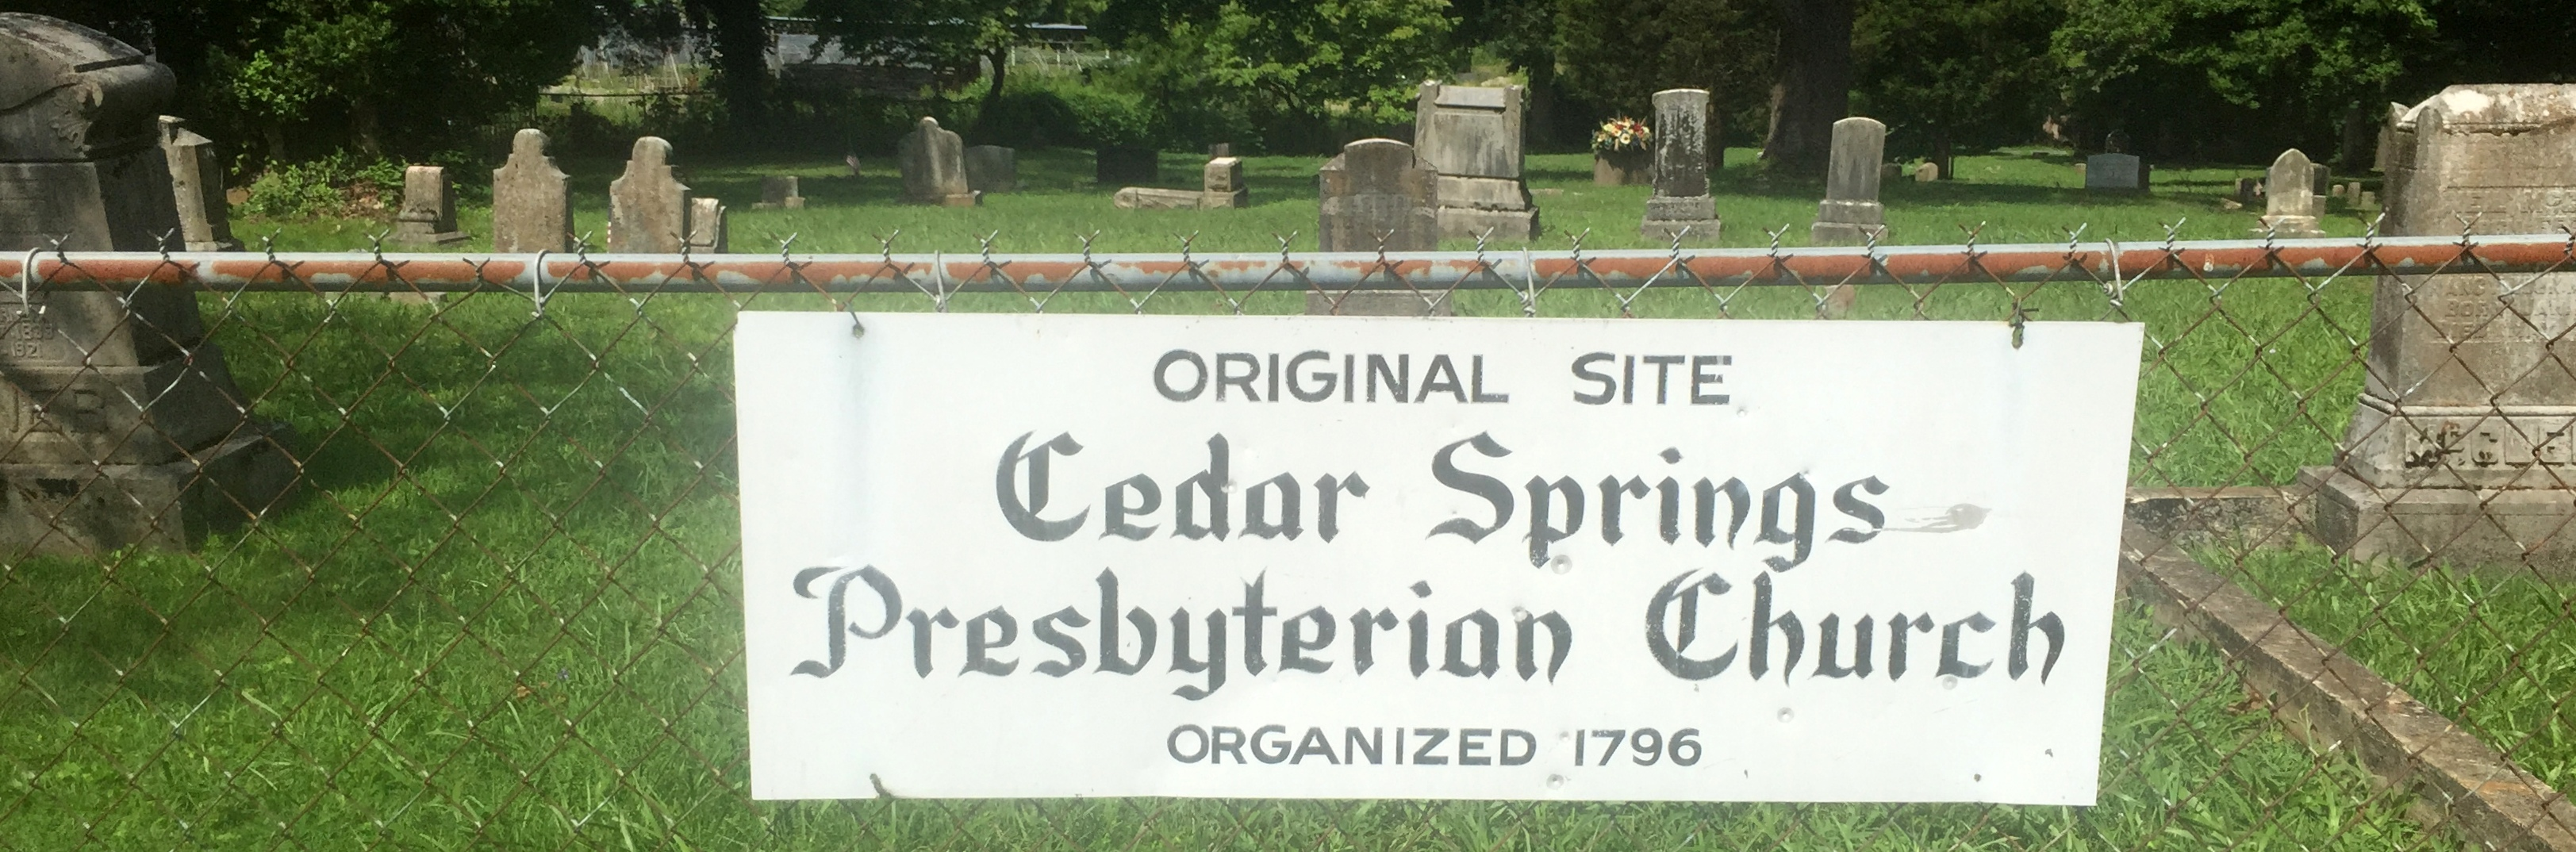 cedar springs Private summer recreational cottage community in a valley of the niagara escarpment in north burlington, ontario.